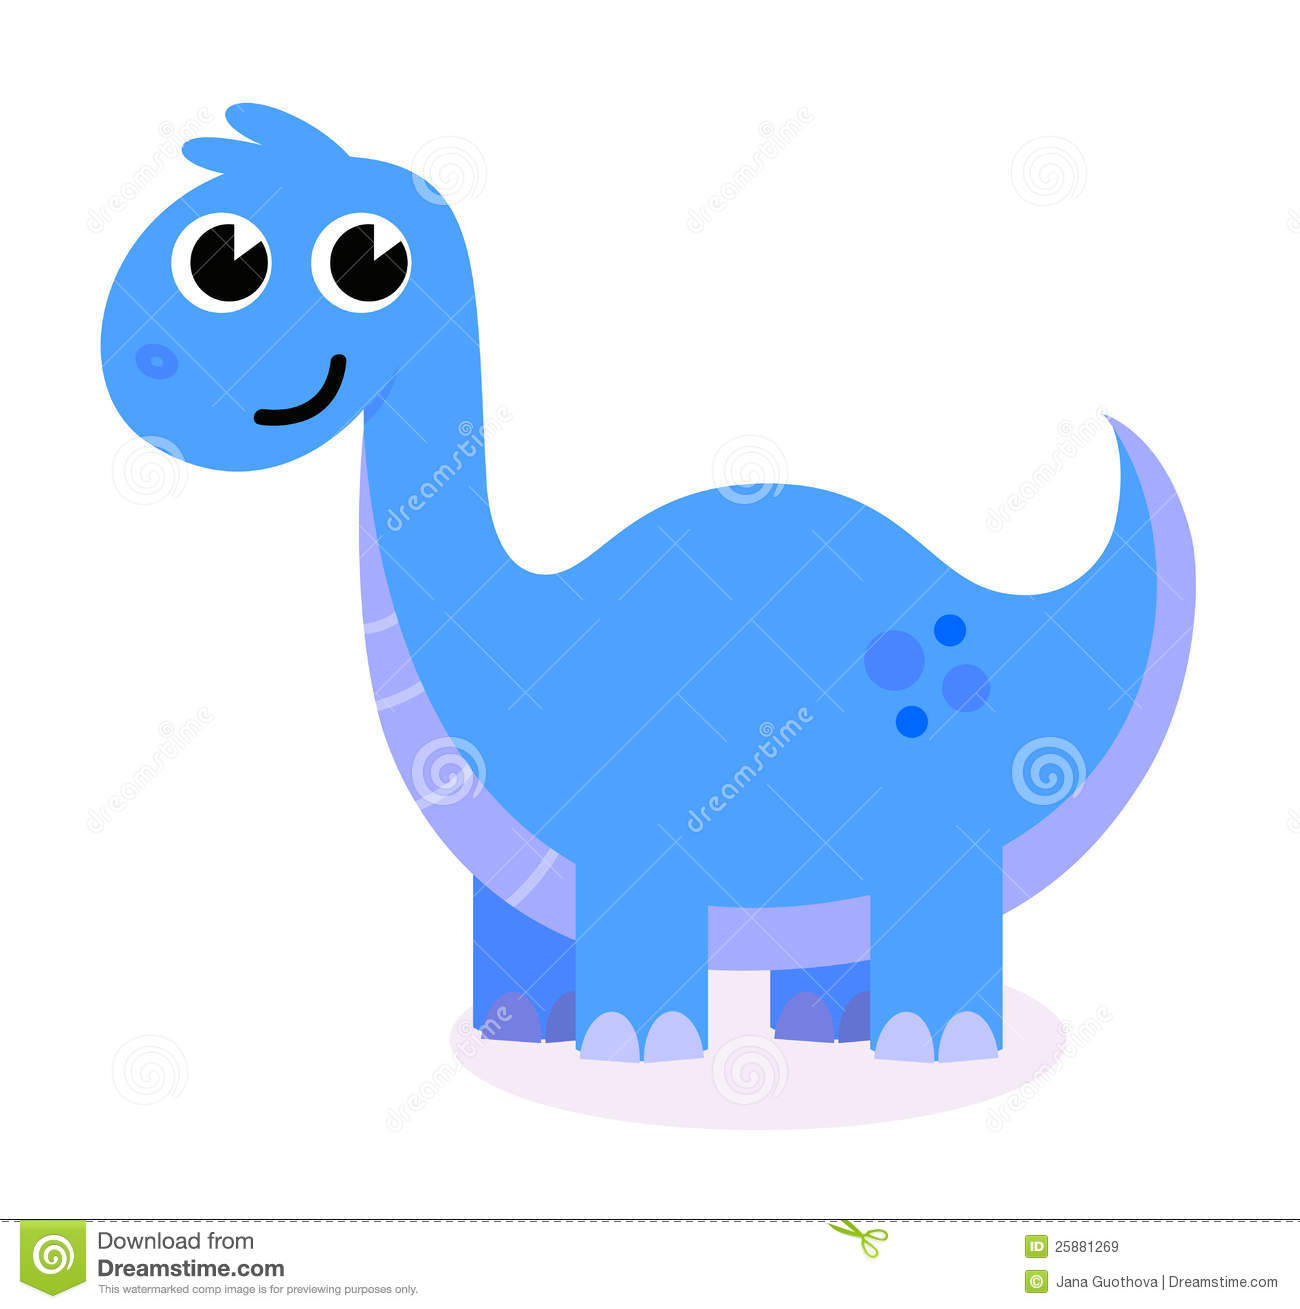 Cute Blue Dinosaur Royalty Free Stock Images - Image: 25881269